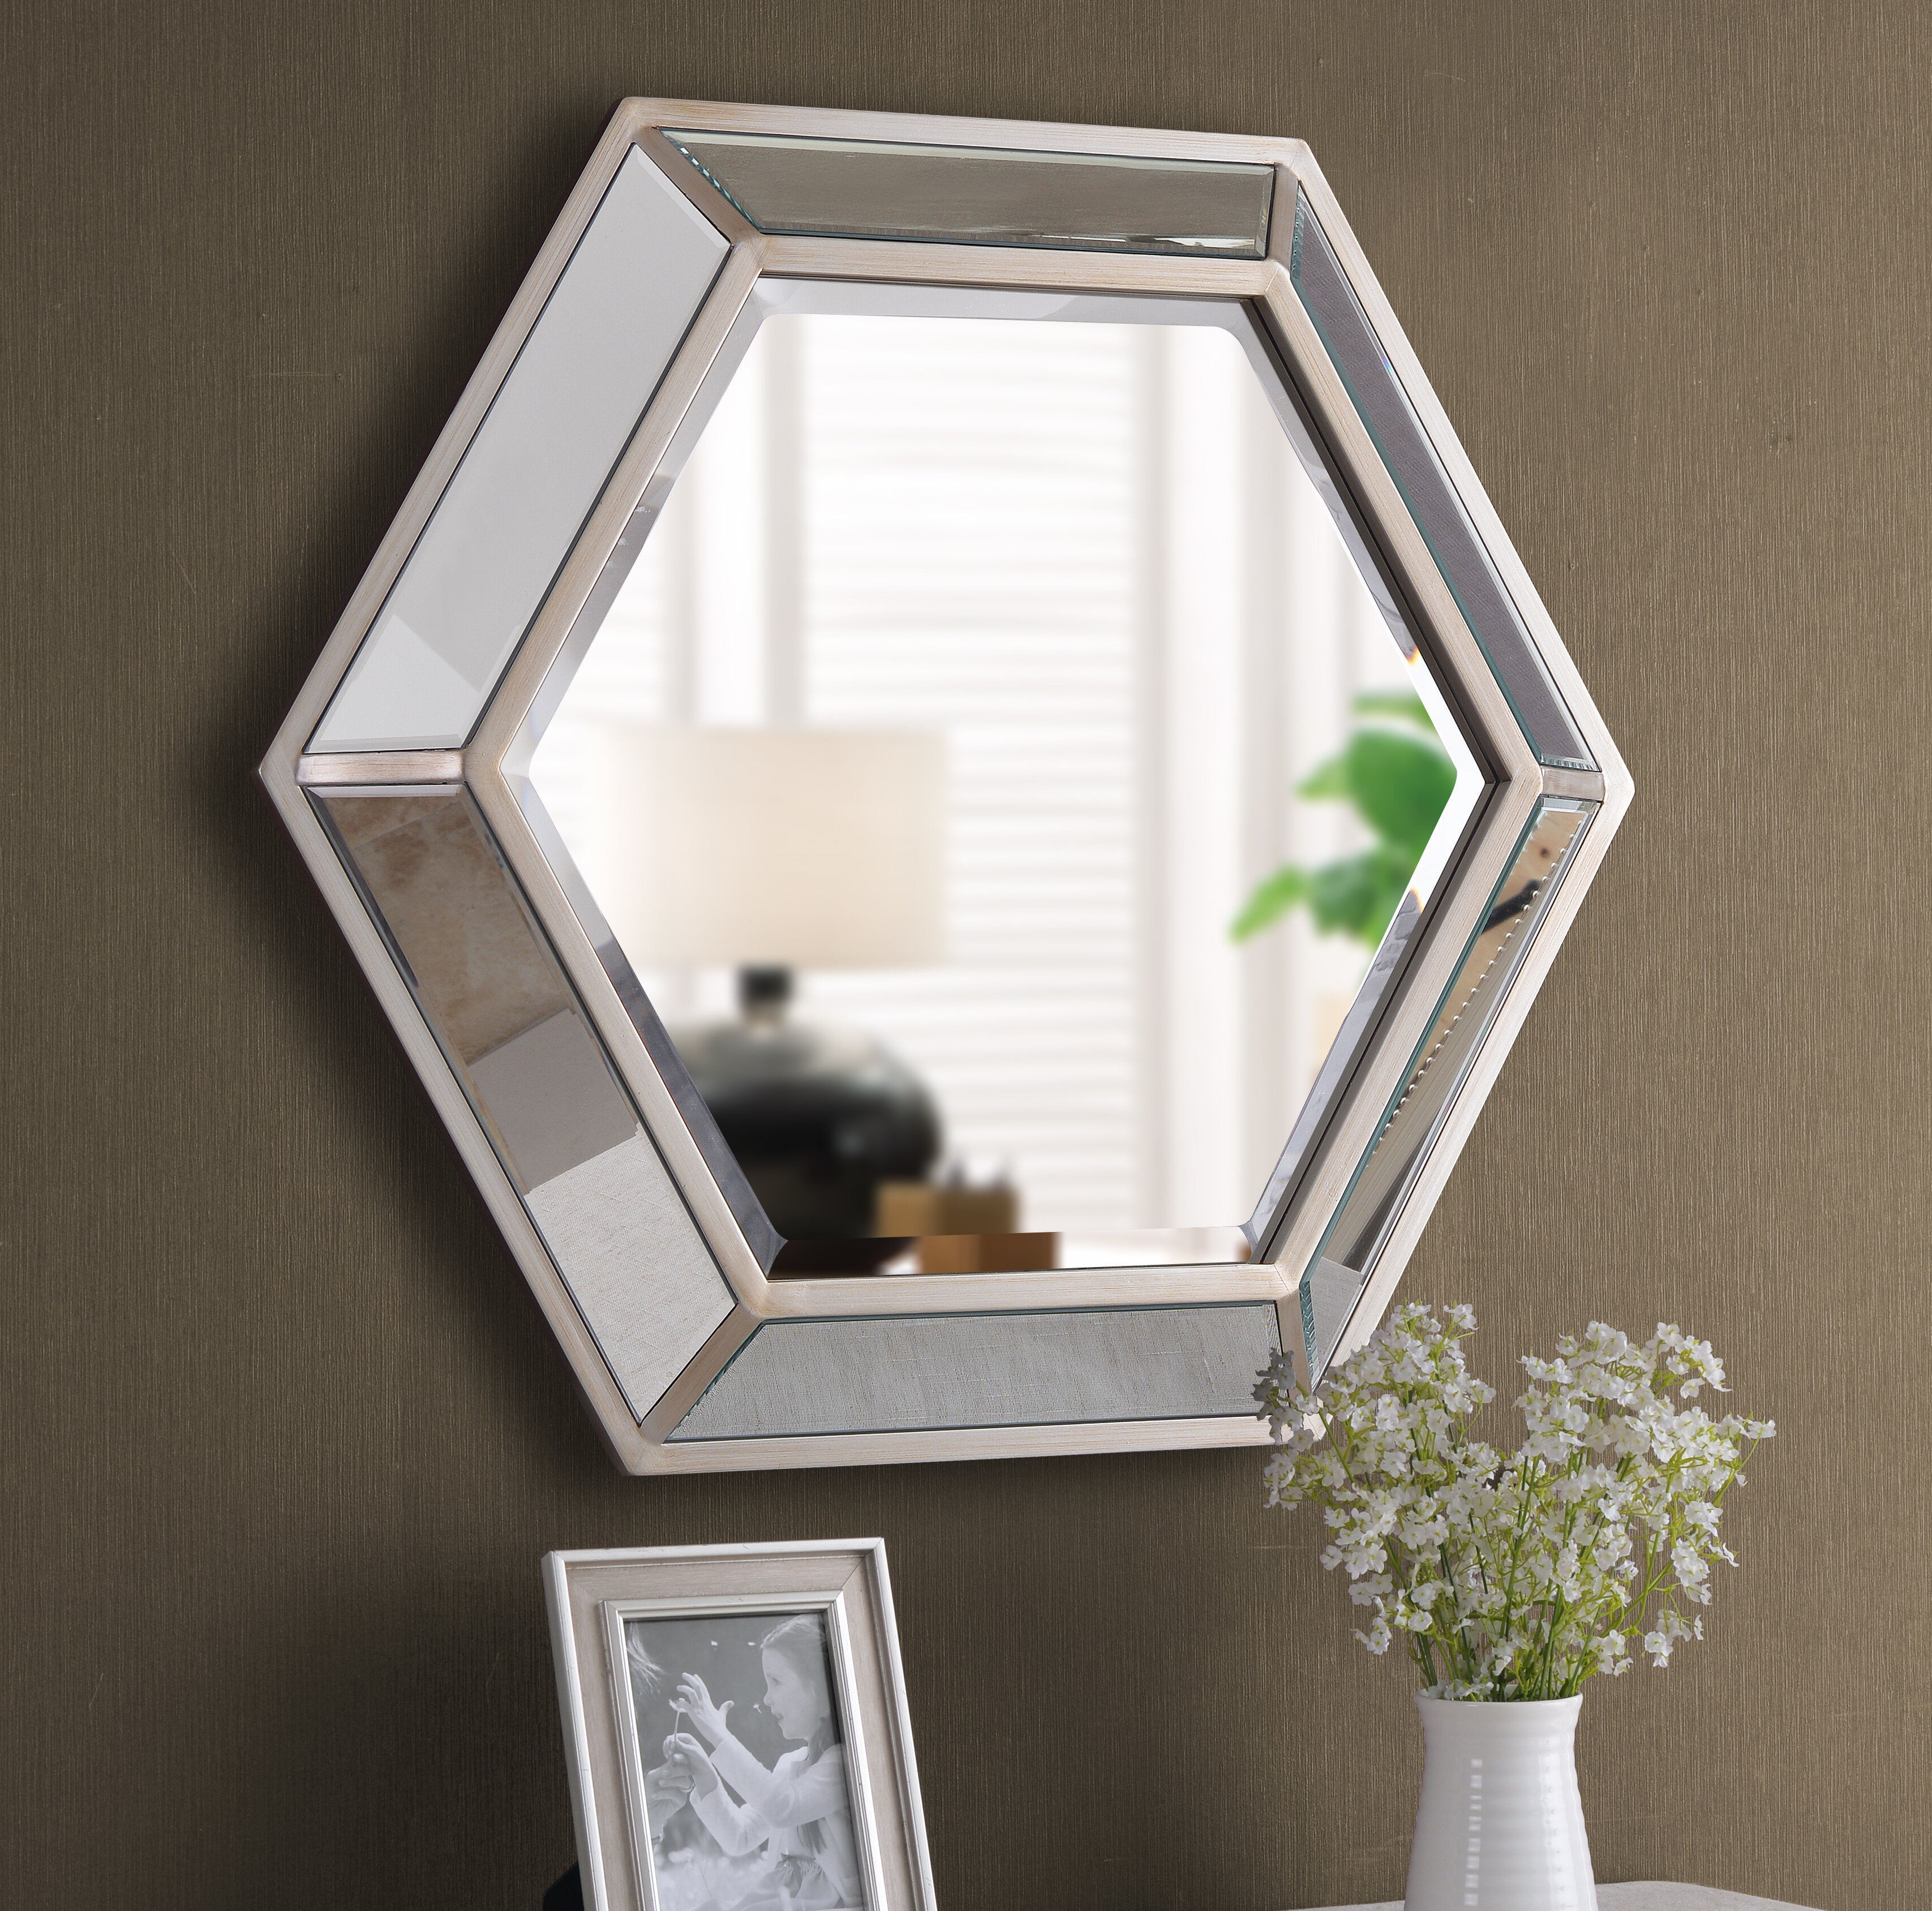 Tulare Hexagonal D Ring Wall Mounted Beveled Accent Mirror Intended For Trigg Accent Mirrors (View 18 of 30)